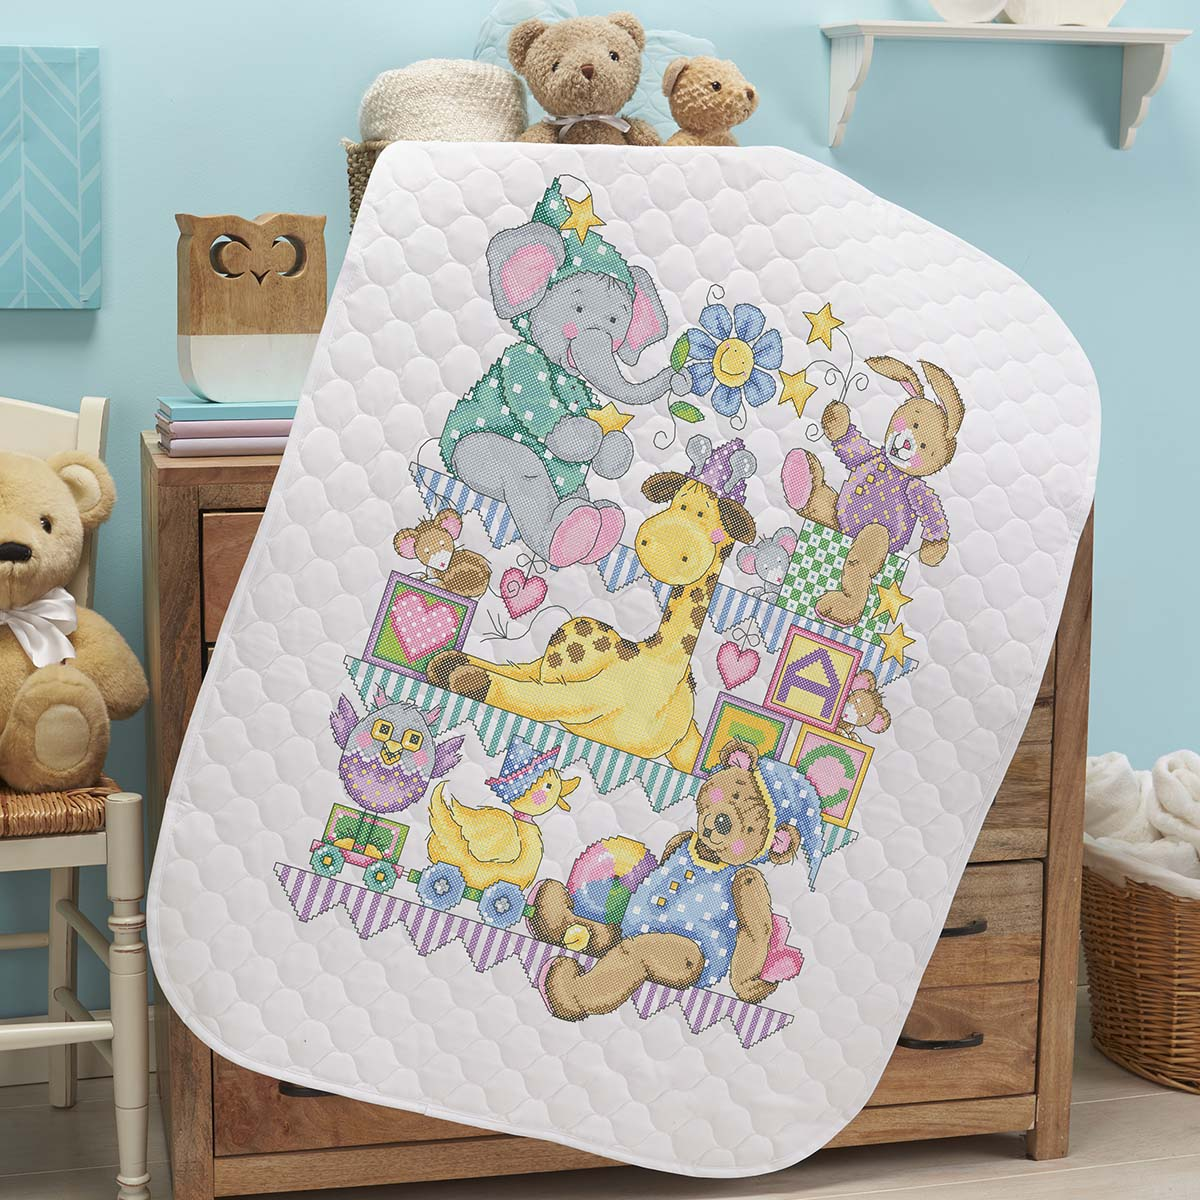 Herrschners® Pre-Quilted Playland Baby Quilt Kit Stamped Cross-Stitch